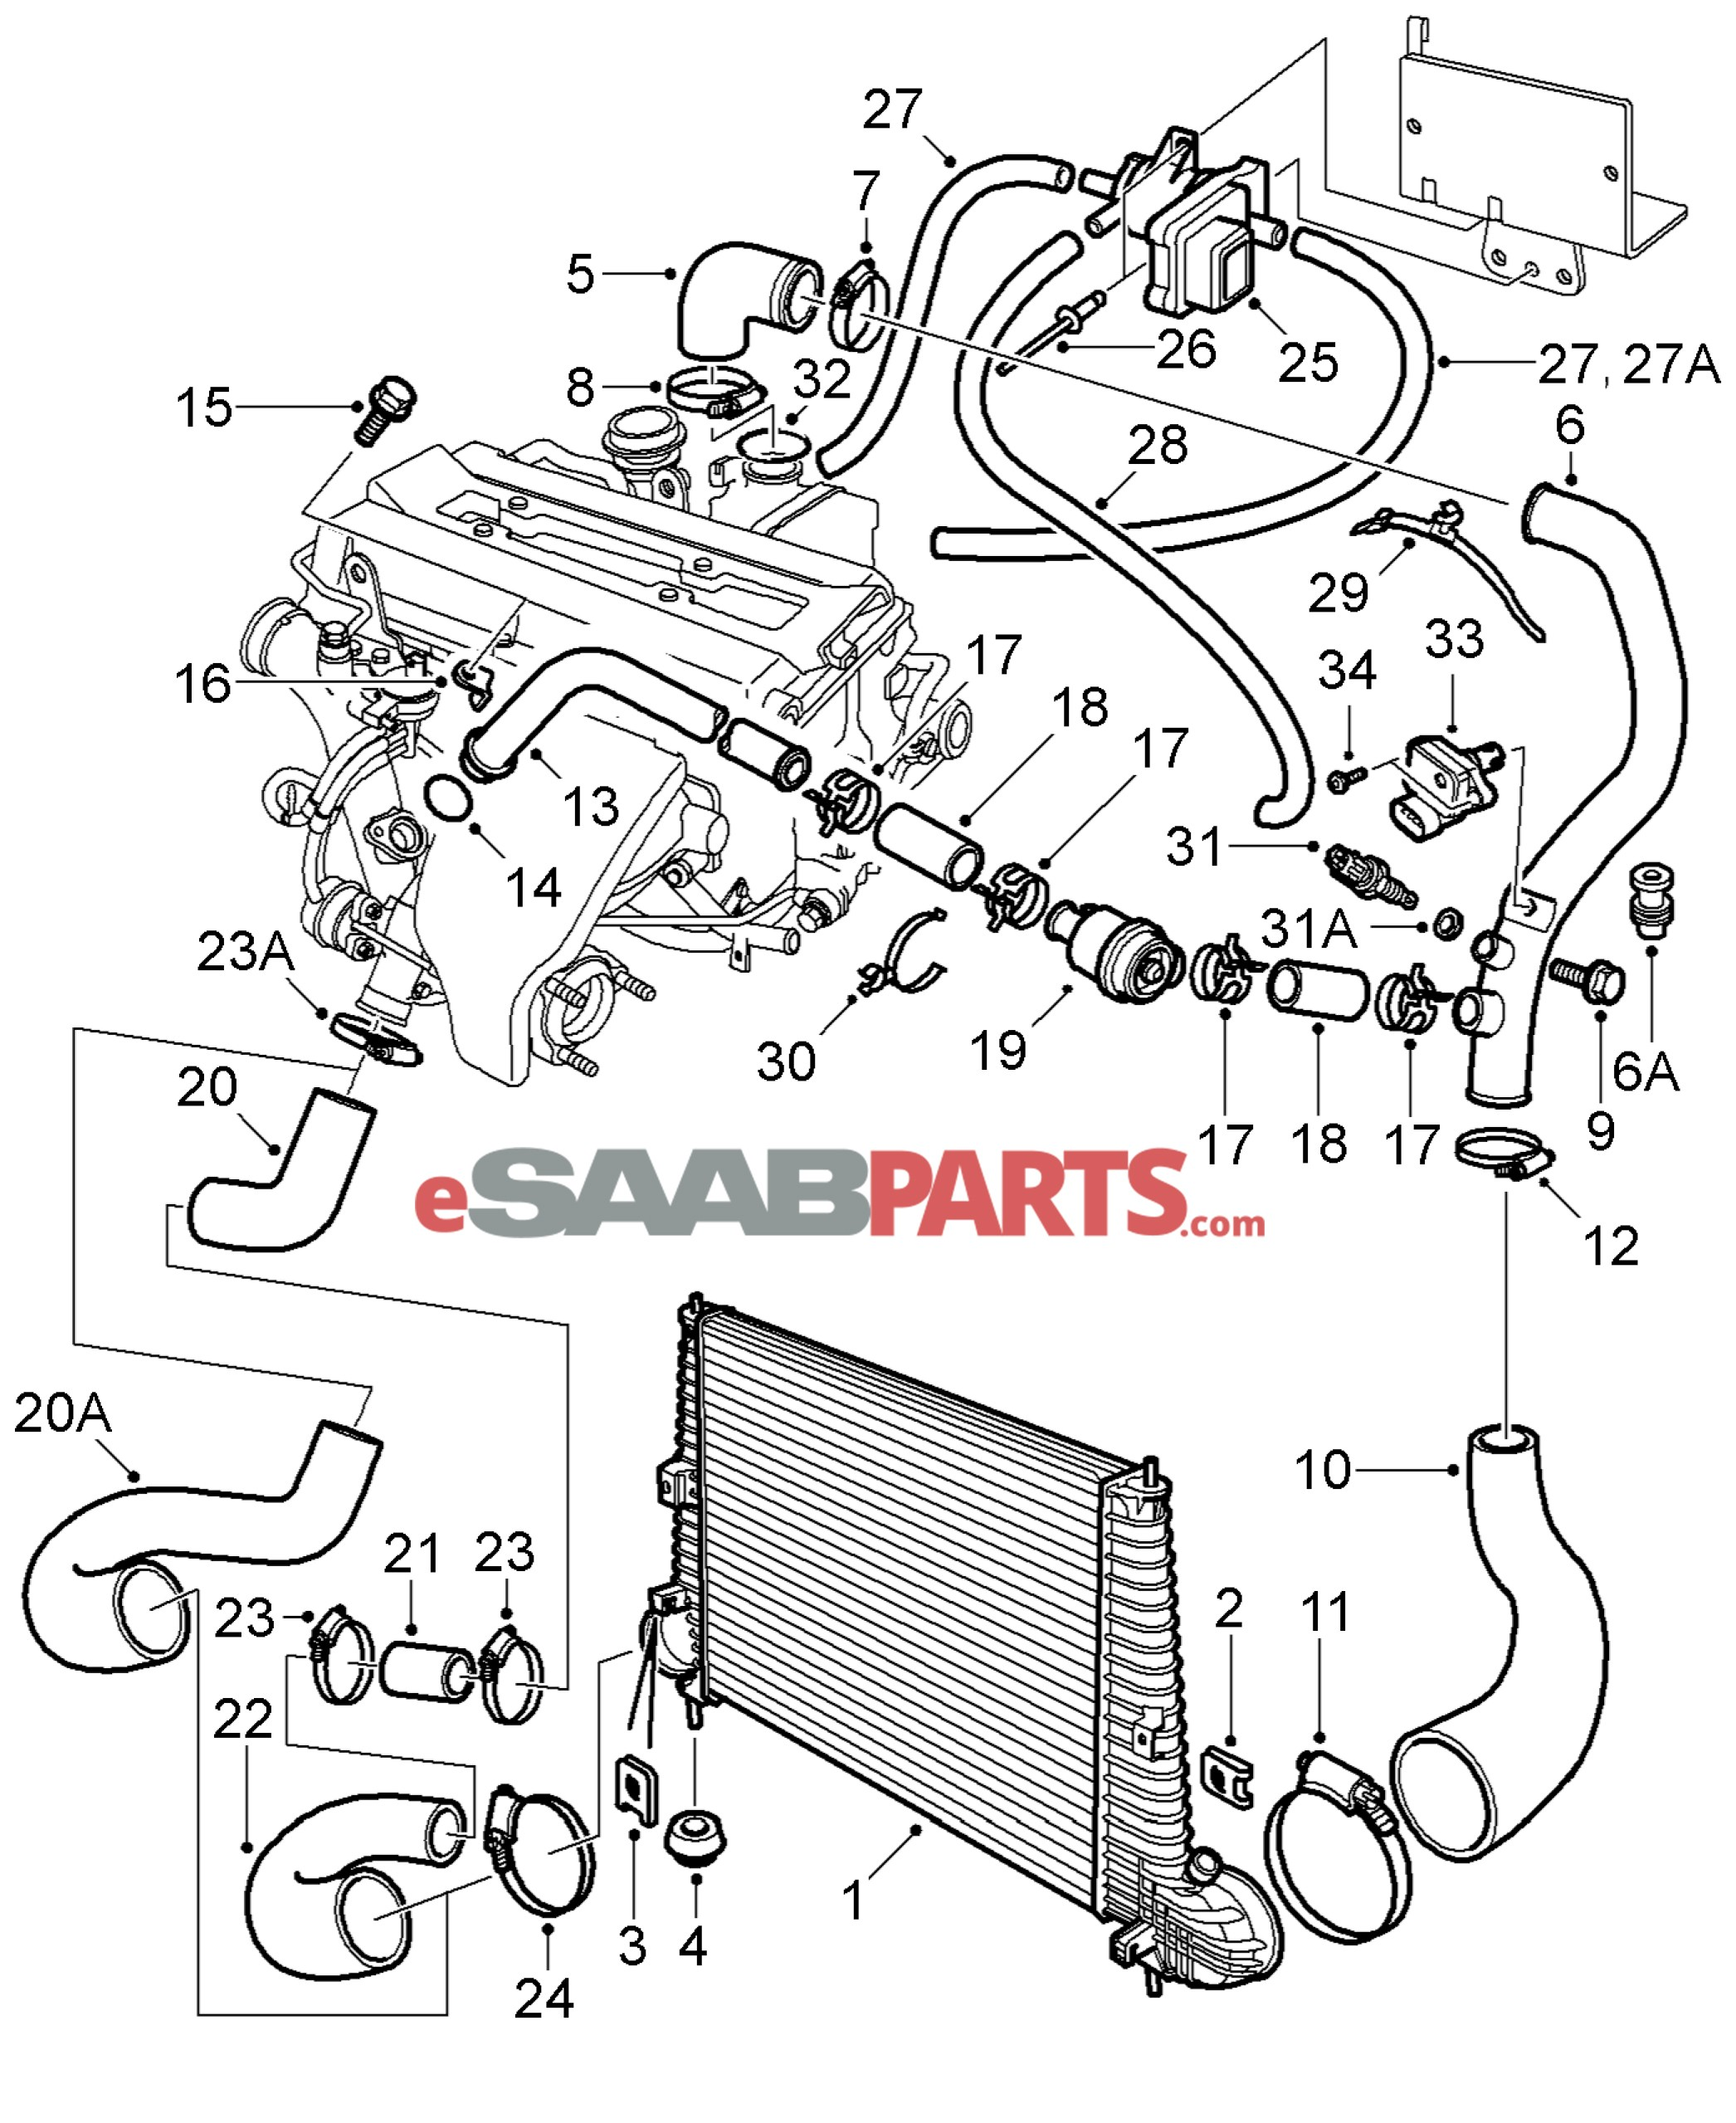 Saab 9 3 engine diagram my wiring diagram rh detoxicrecenze saab 9 3 parts diagram